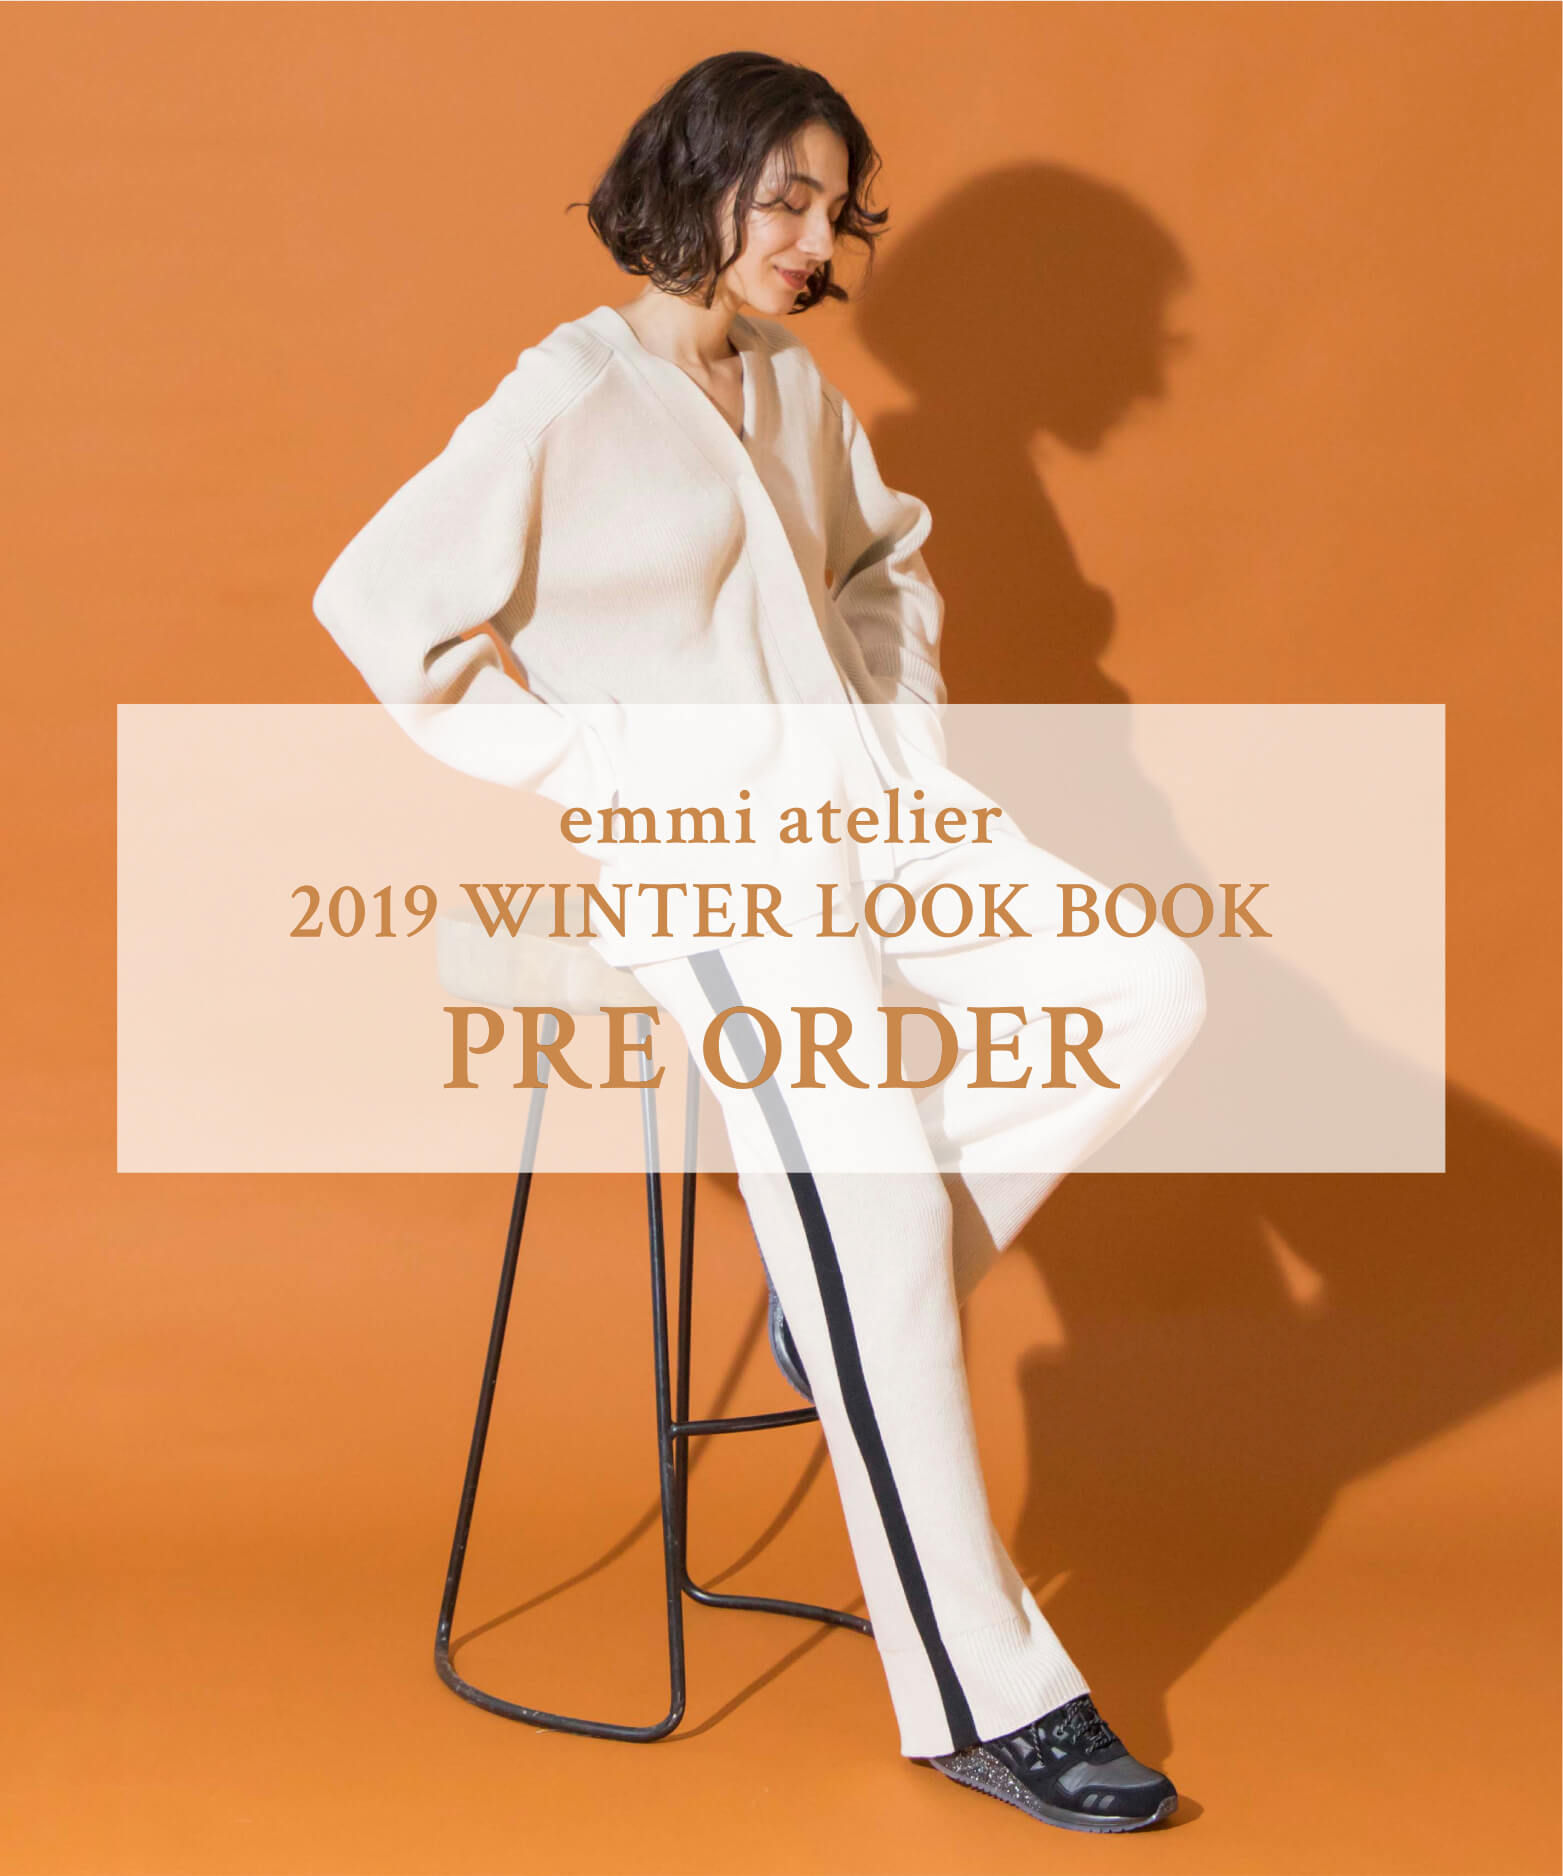 emmi atelier 2019 WINTER LOOK BOOK PRE ORDER